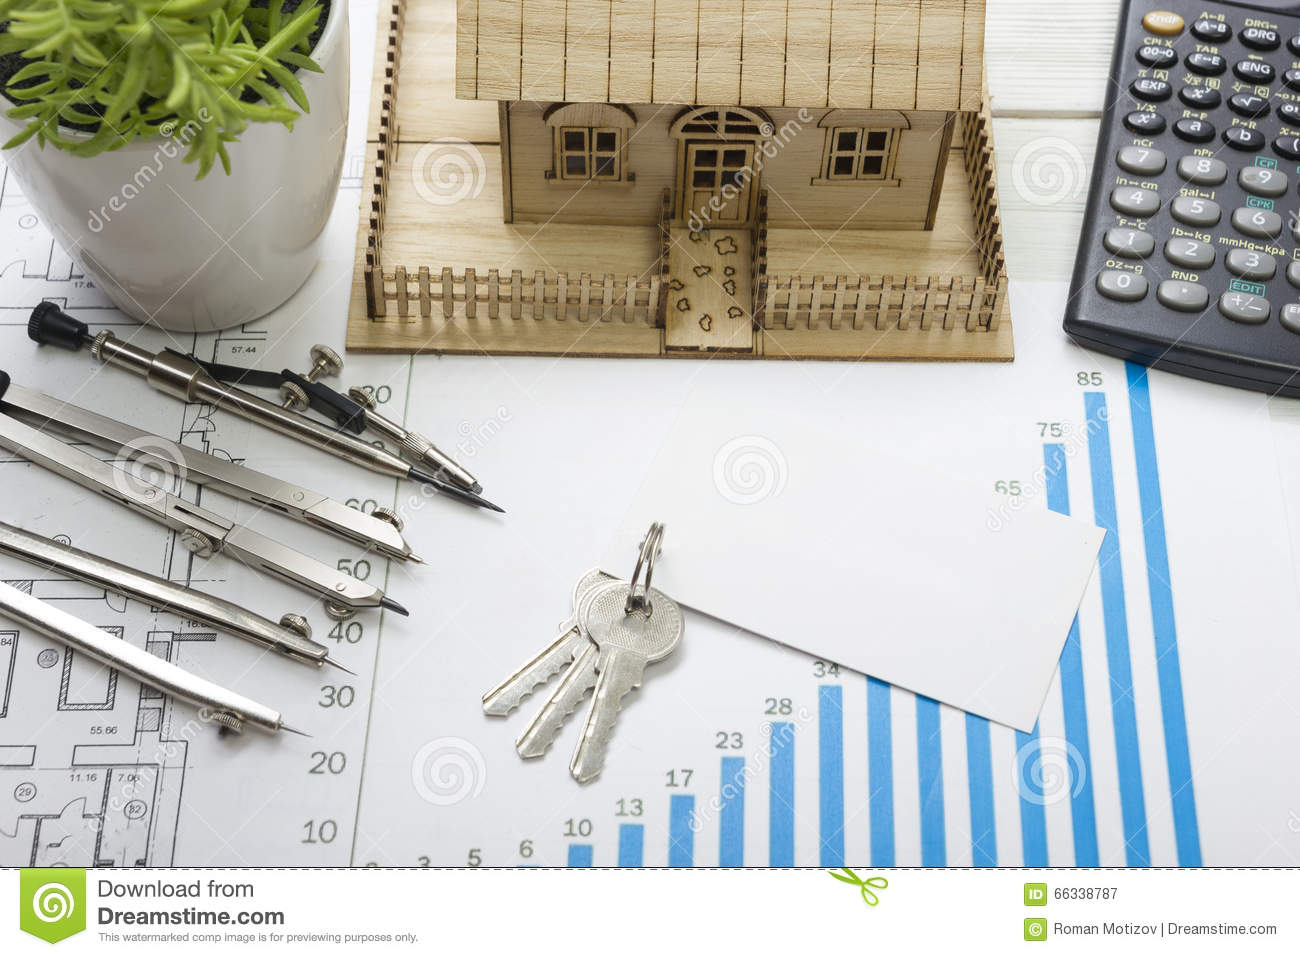 model house construction plan for house building keys blank model house construction plan for house building keys blank business card divider